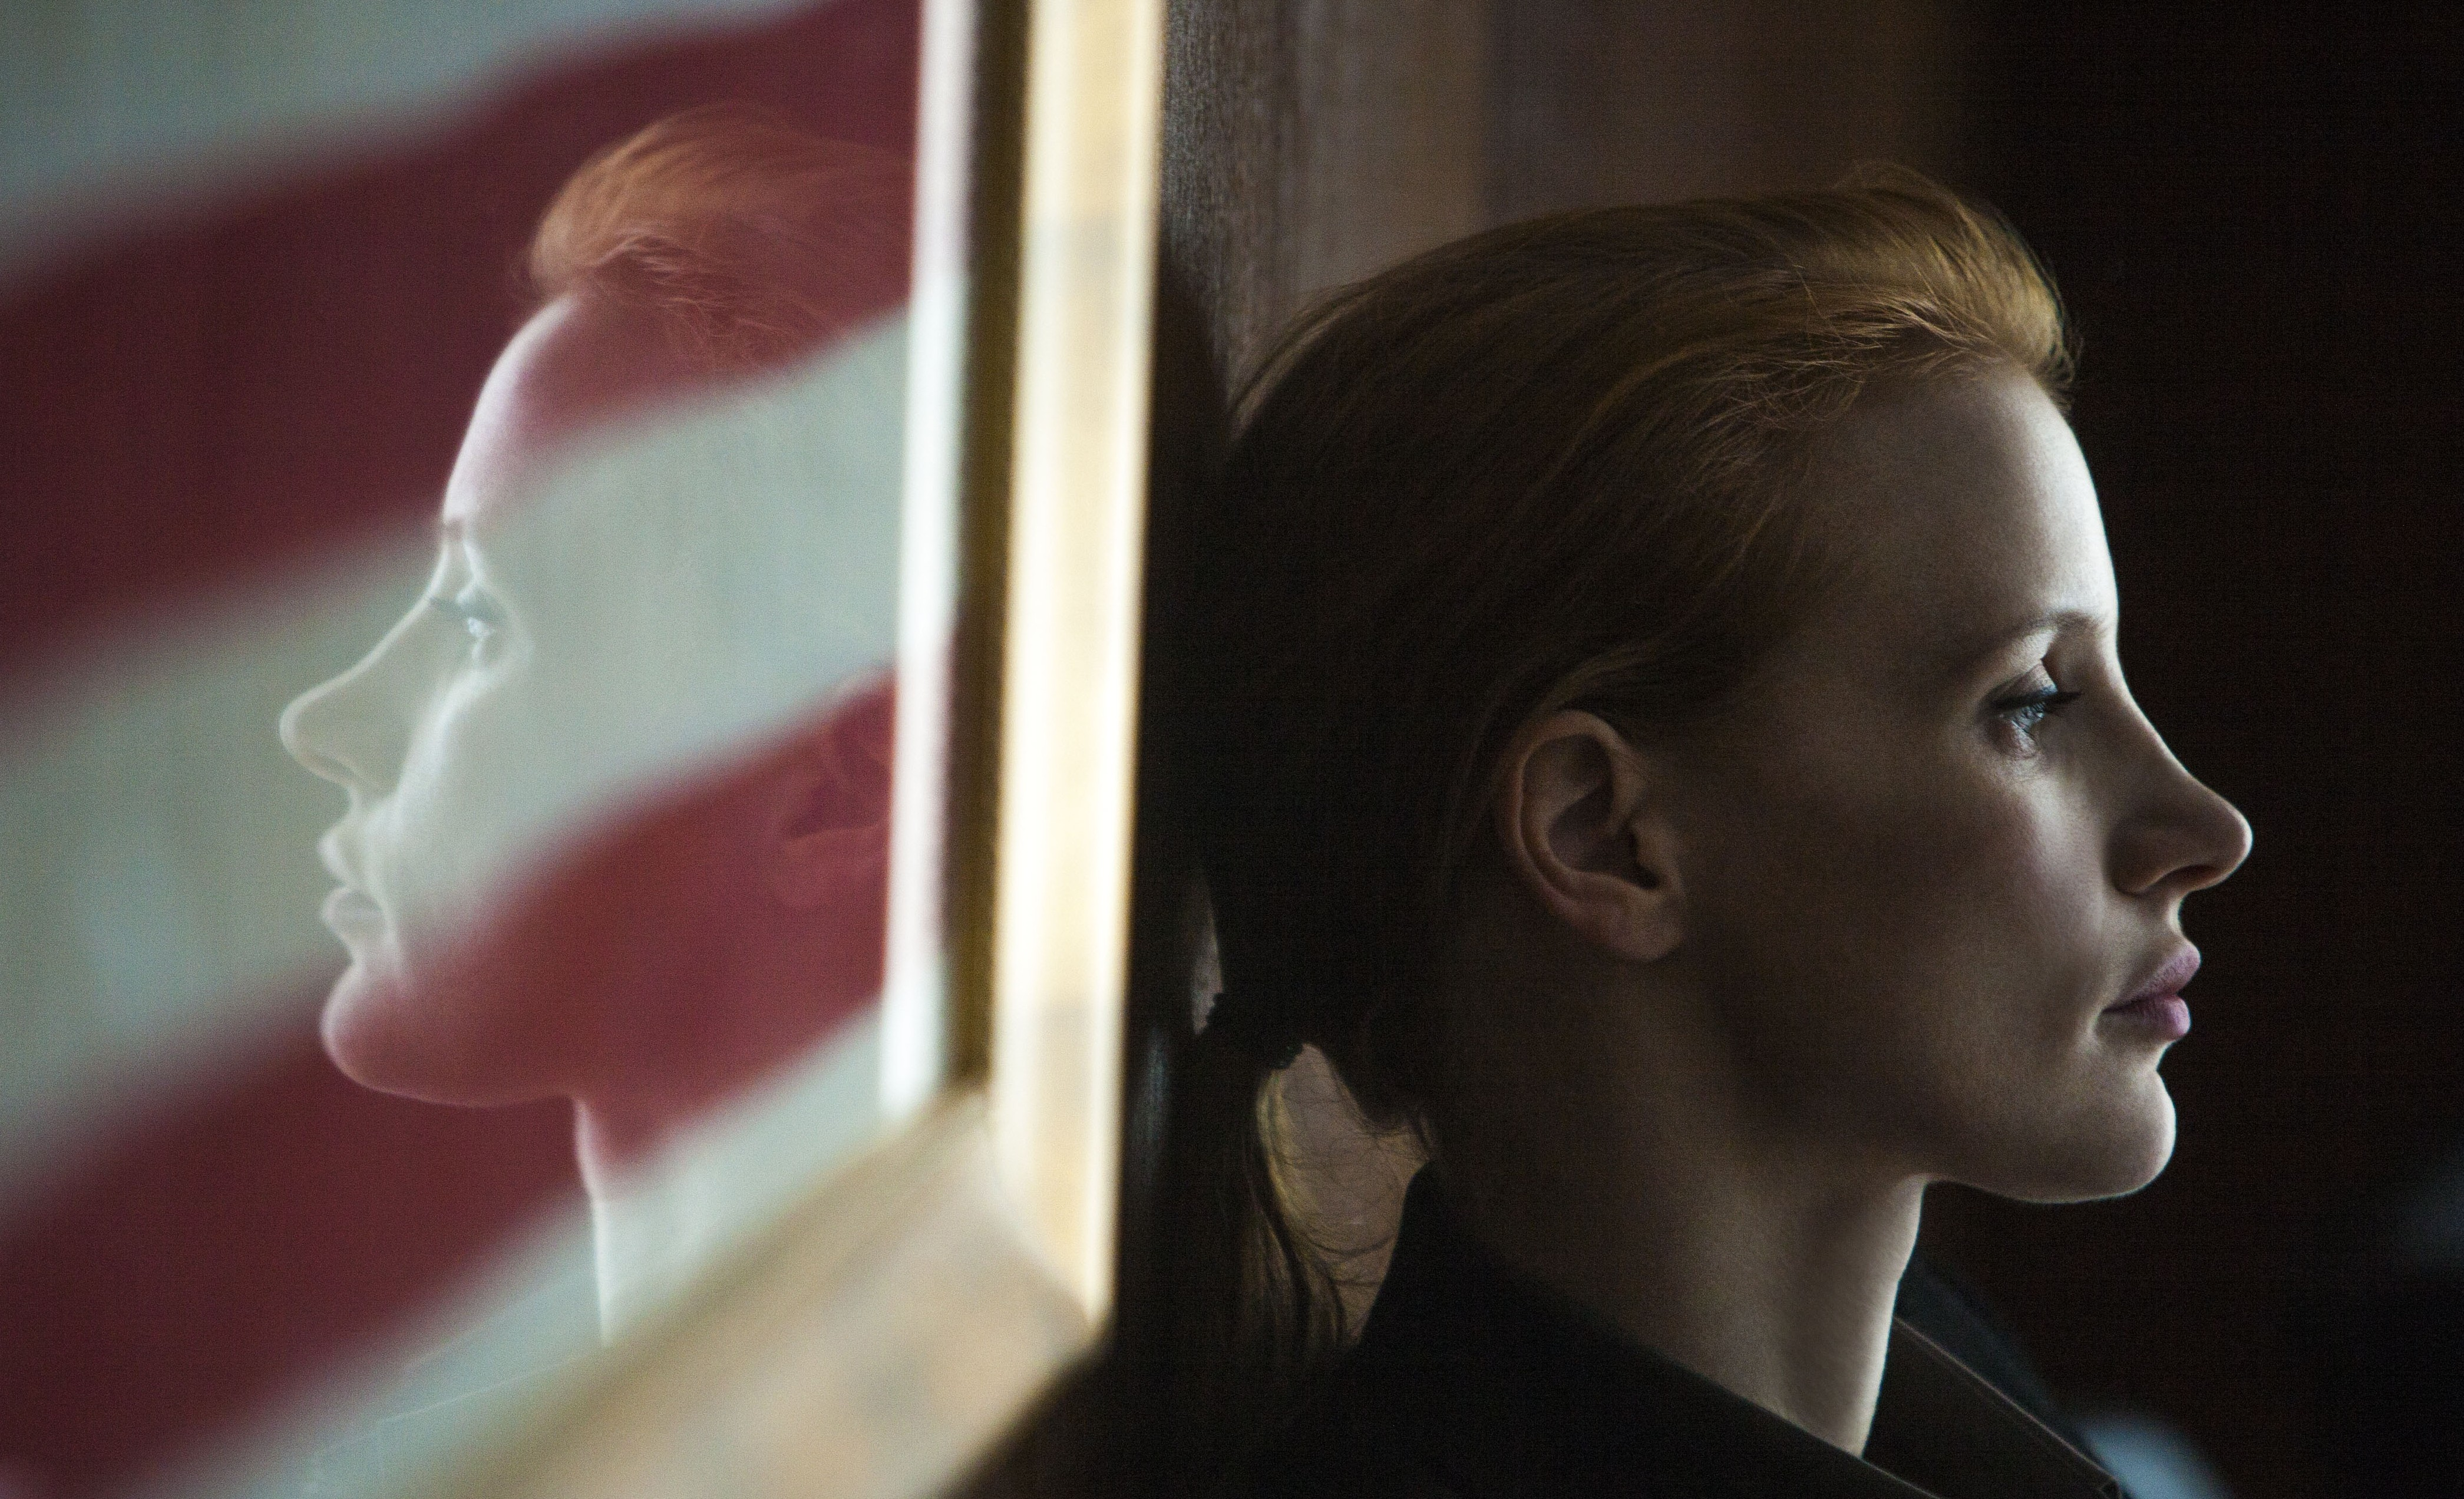 Zero Dark Thirty is a gripping insight into the inner workings of the CIA